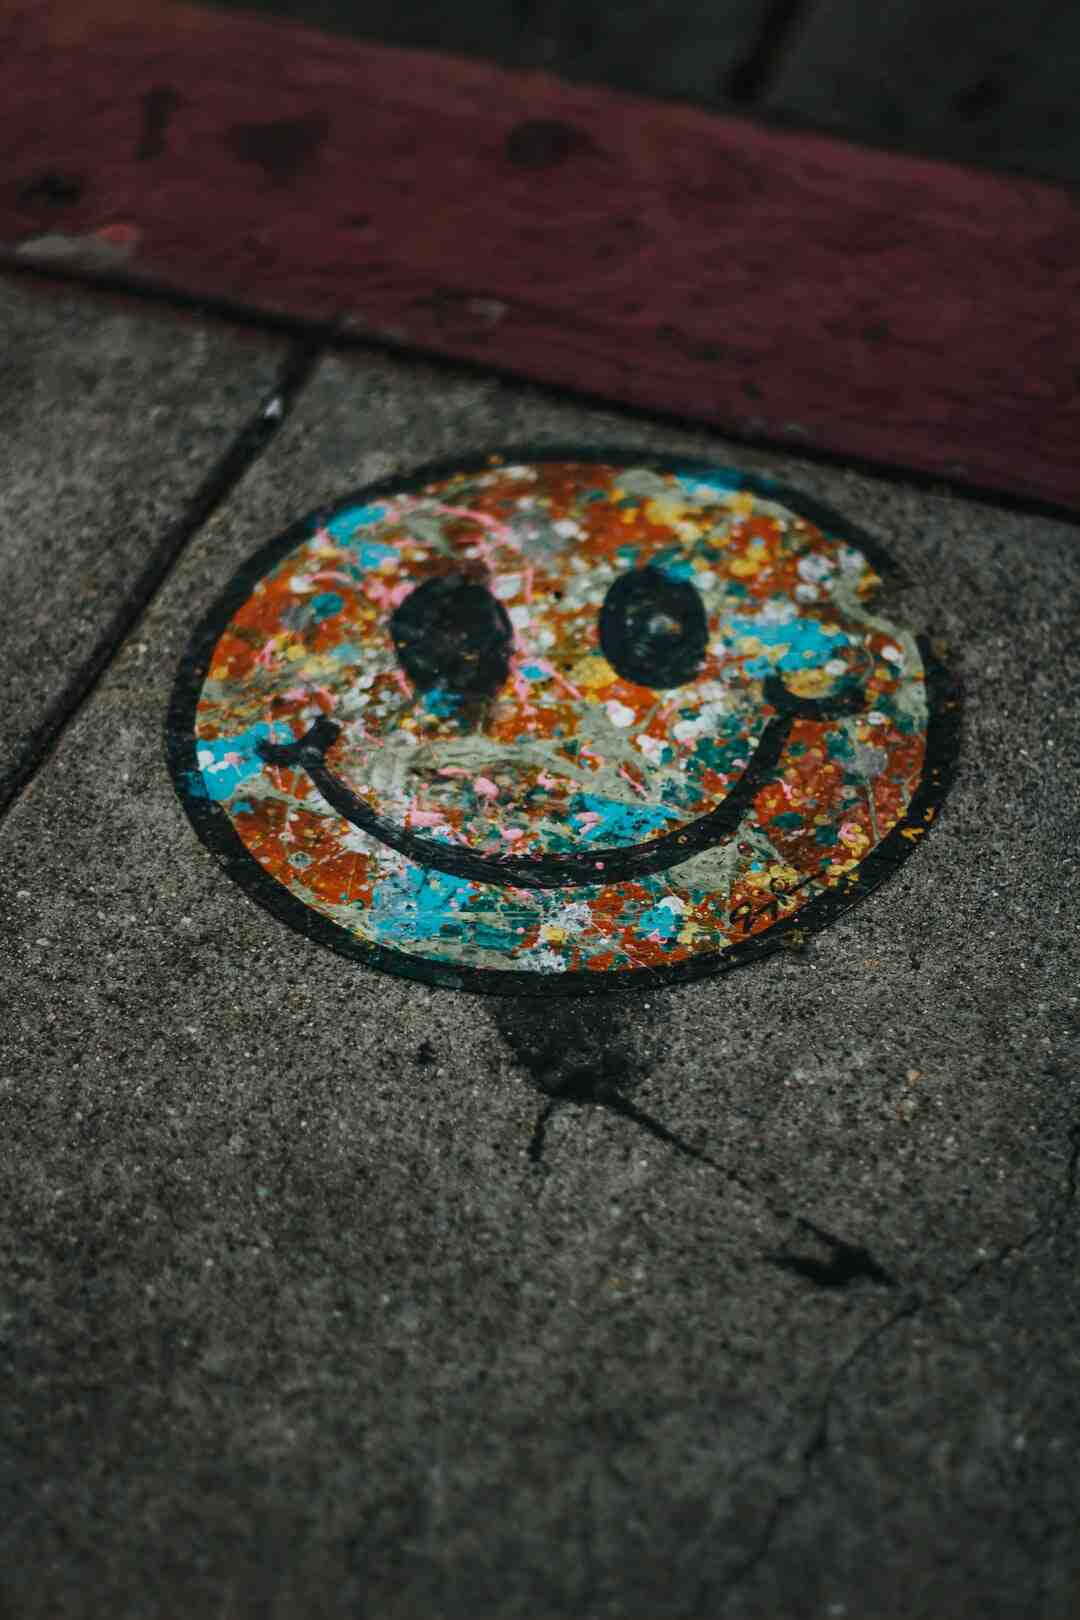 Smiley signification